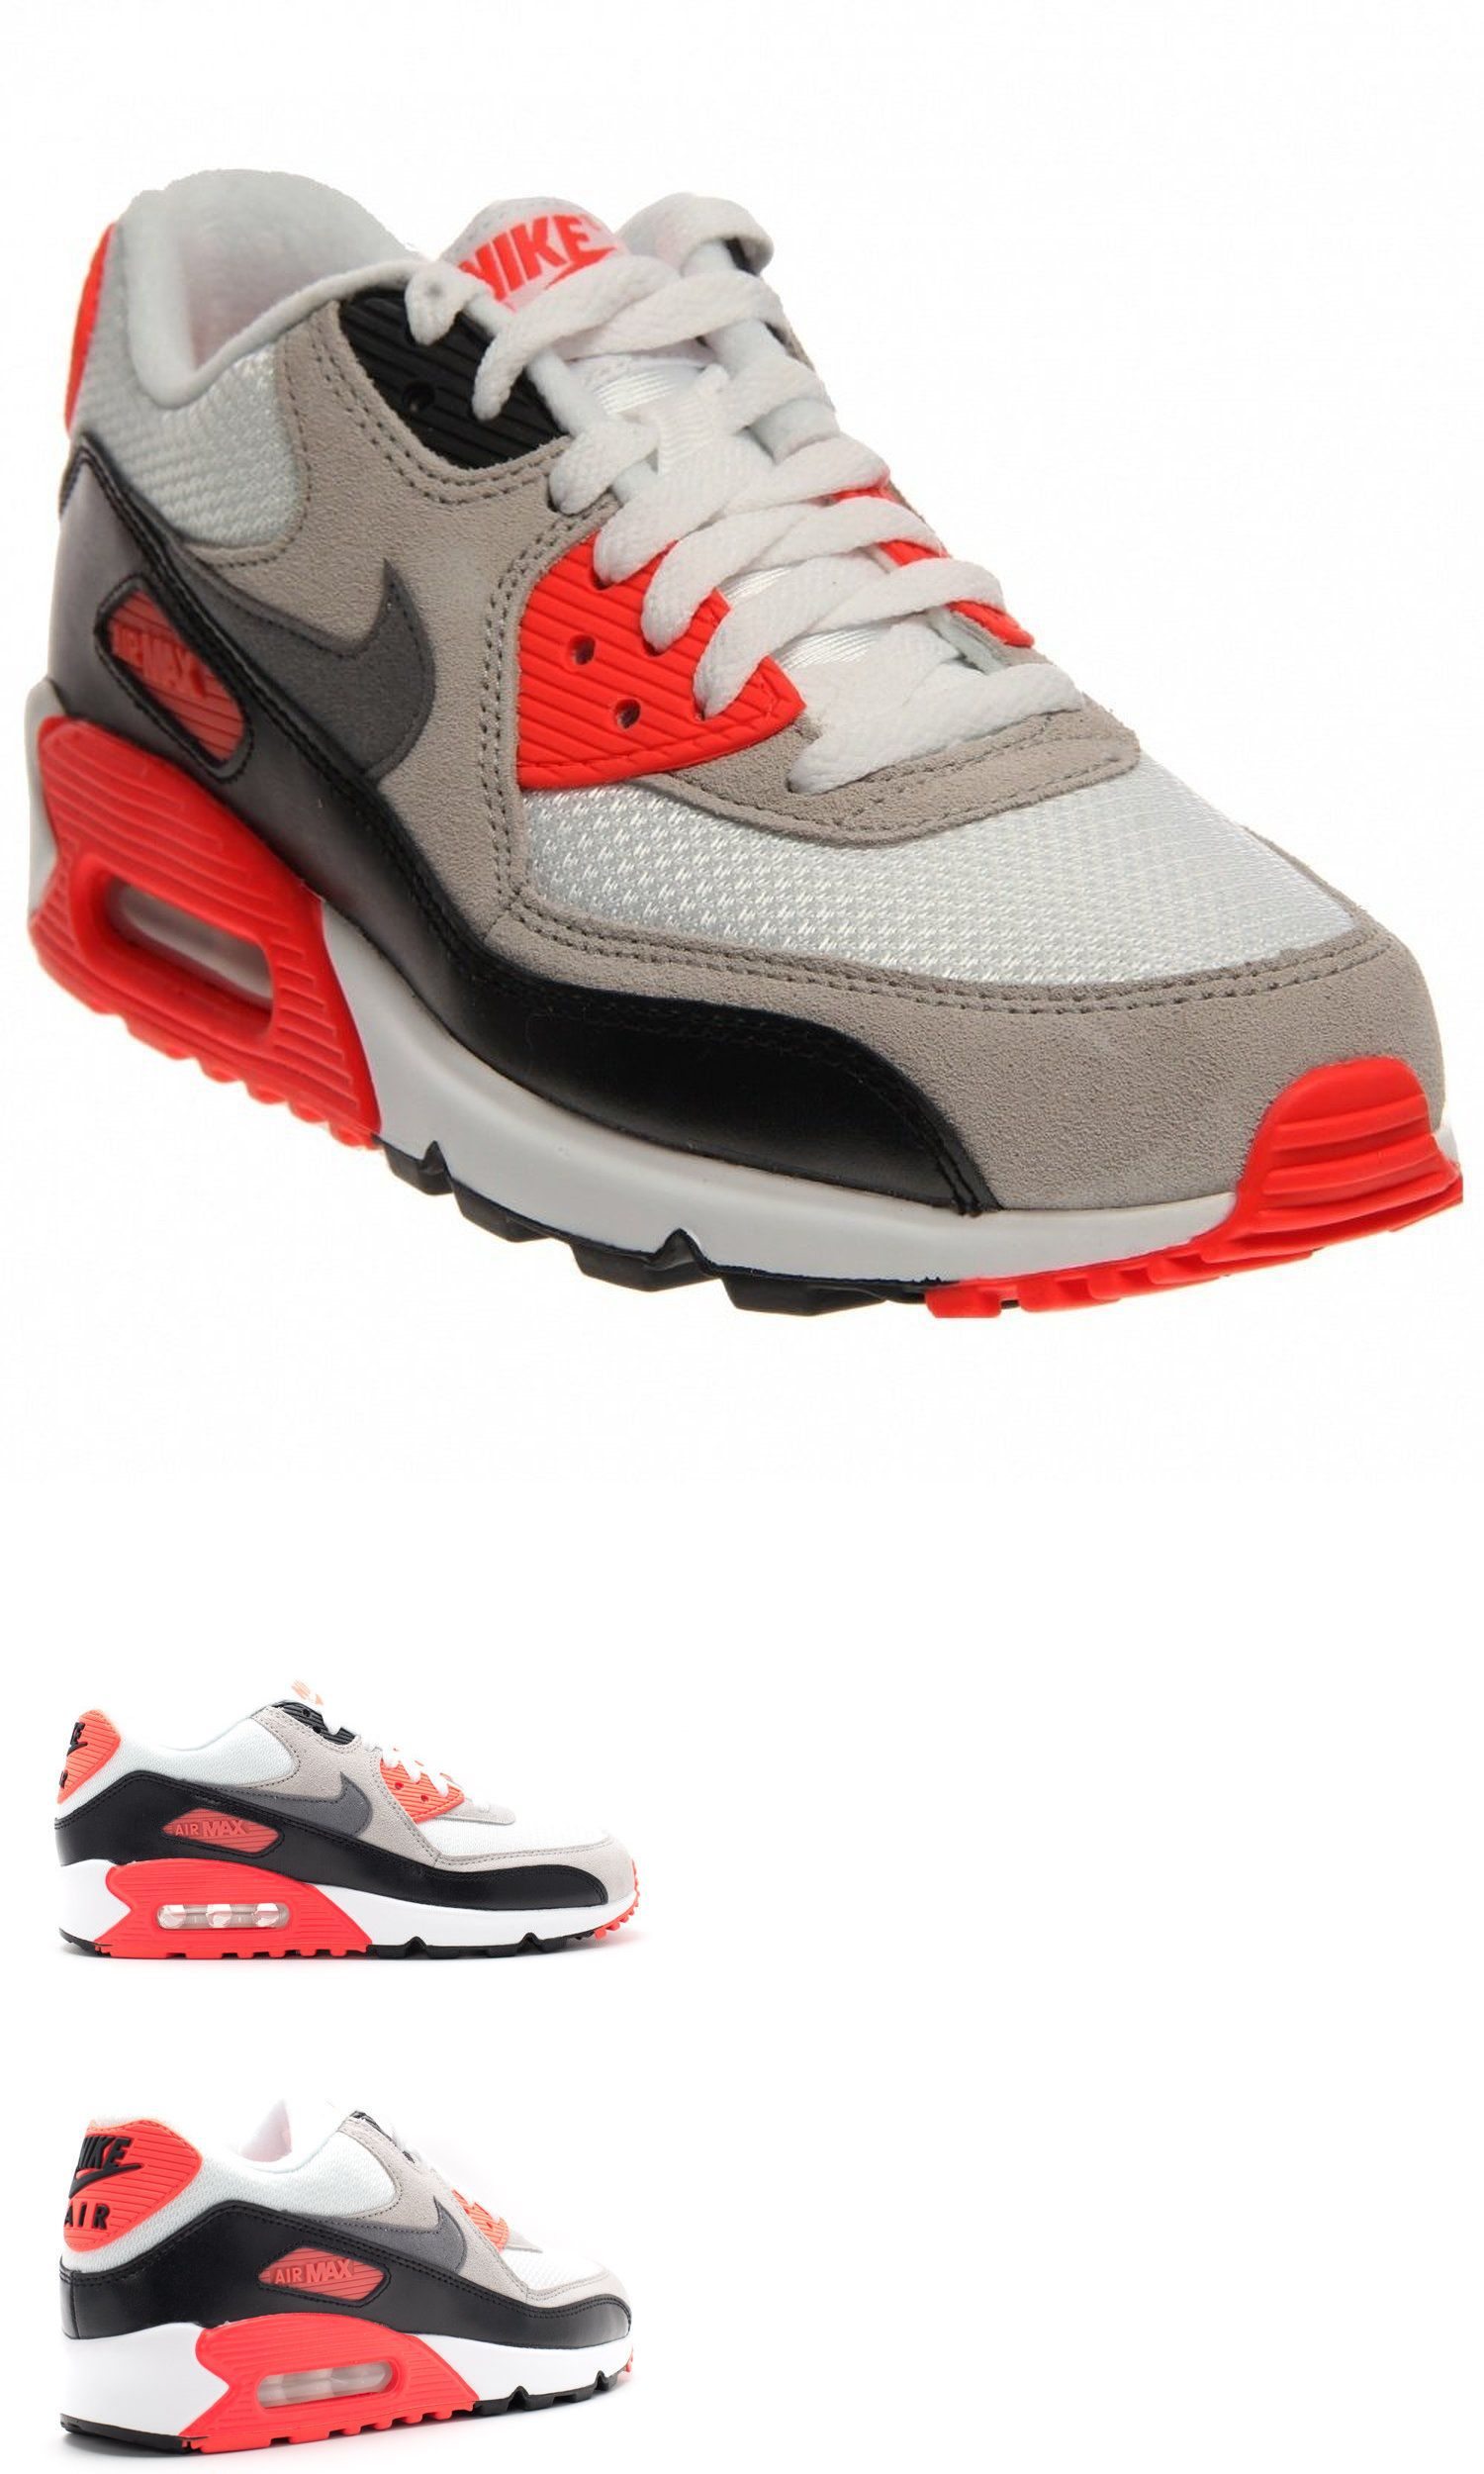 Boys Nike Air Max 90 Cool Grey | C.S.A.L.